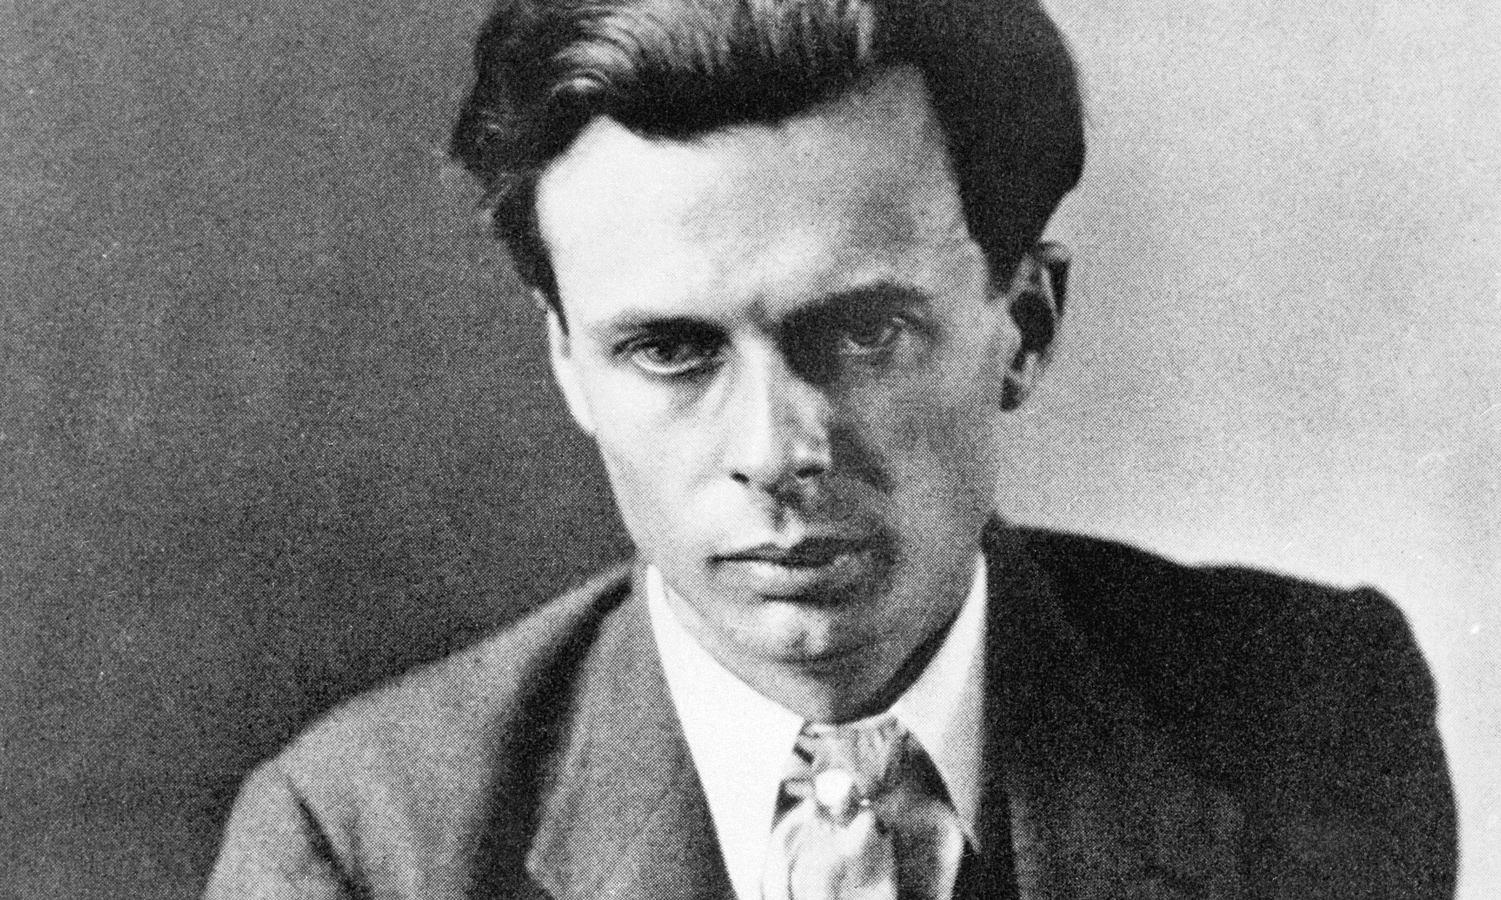 aldous huxley essay george orwell s vision vs aldous huxley s  aldous huxley film essay oliver hockenhull film festivals